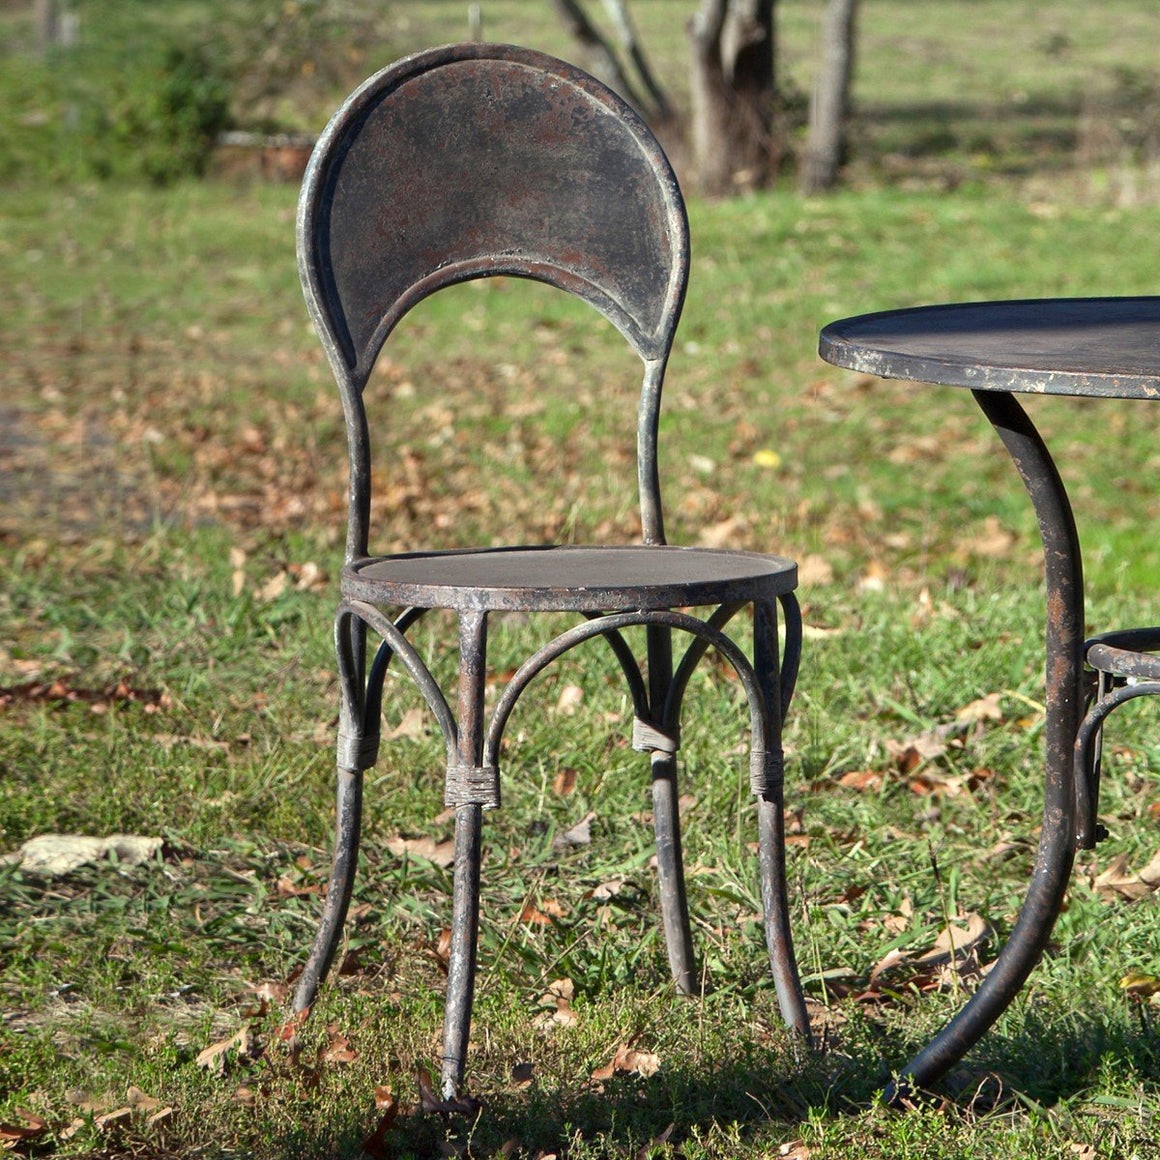 Aged Black Metal Cafe' Chair